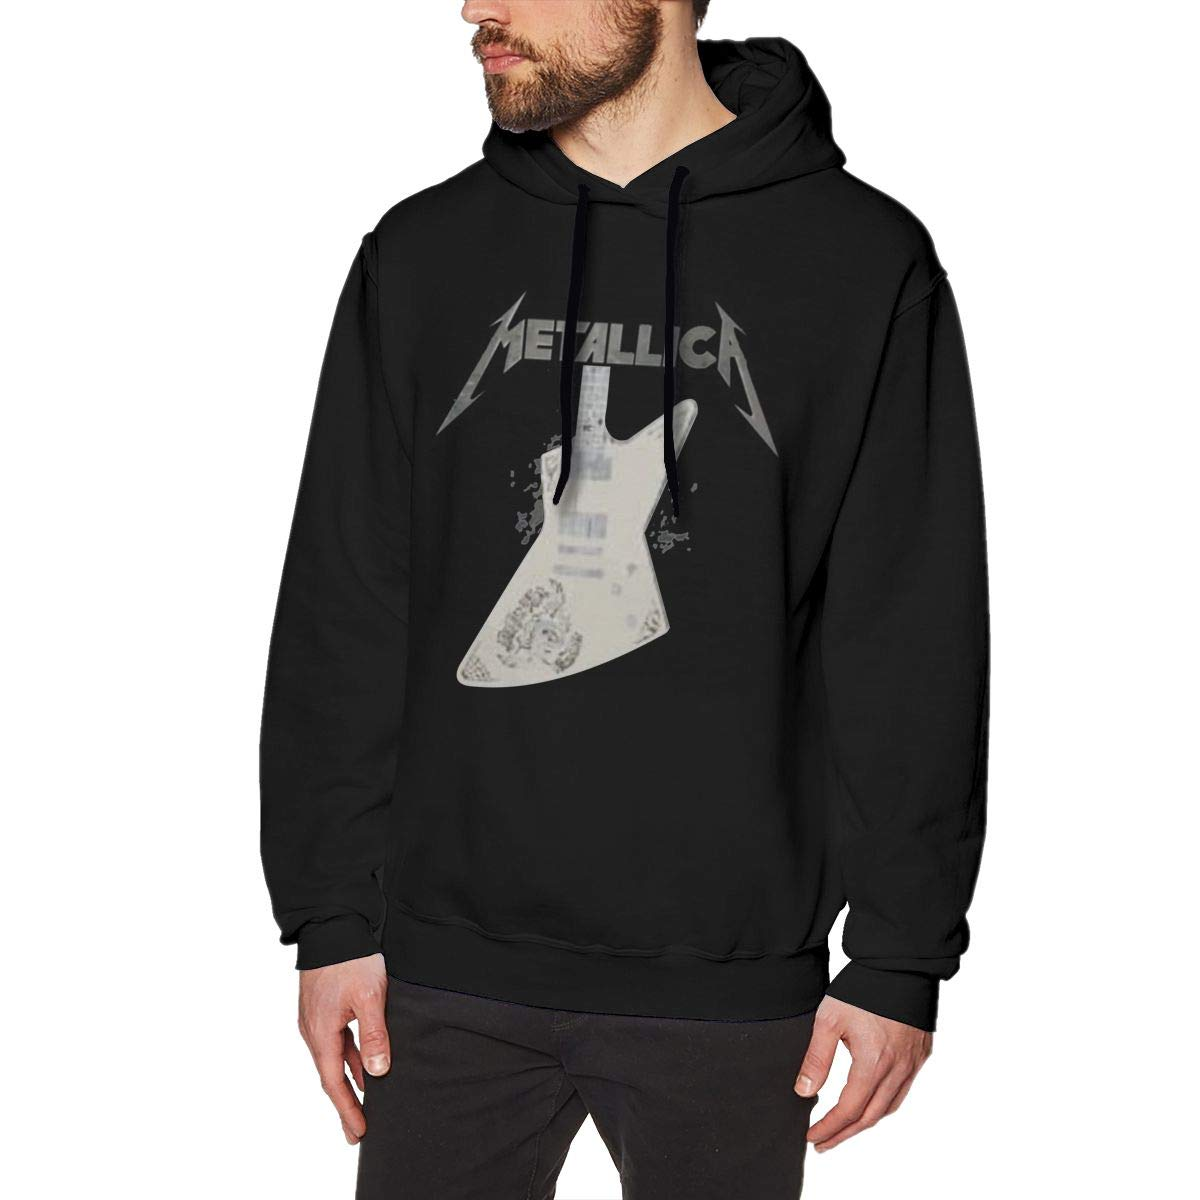 Metallica Heavy Metal Rock Music Hooded S Pullovers Shirts